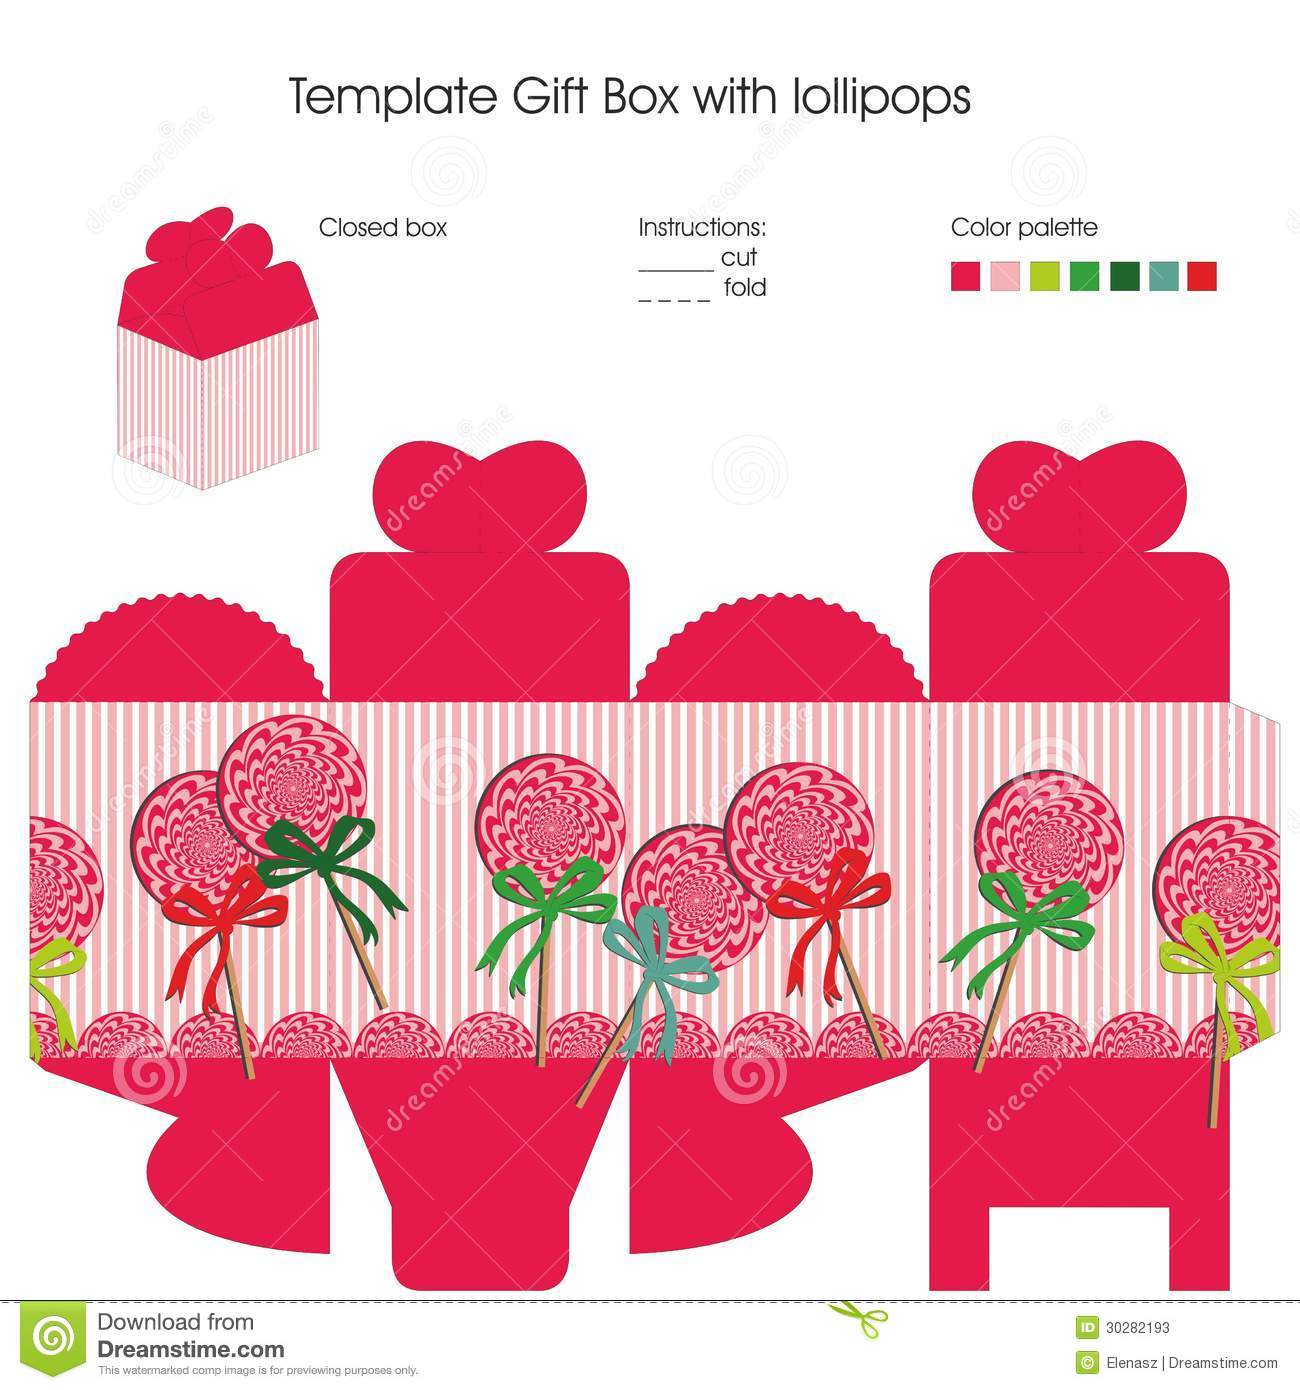 Template For Gift Box Stock Vector Illustration Of Digital 30282193